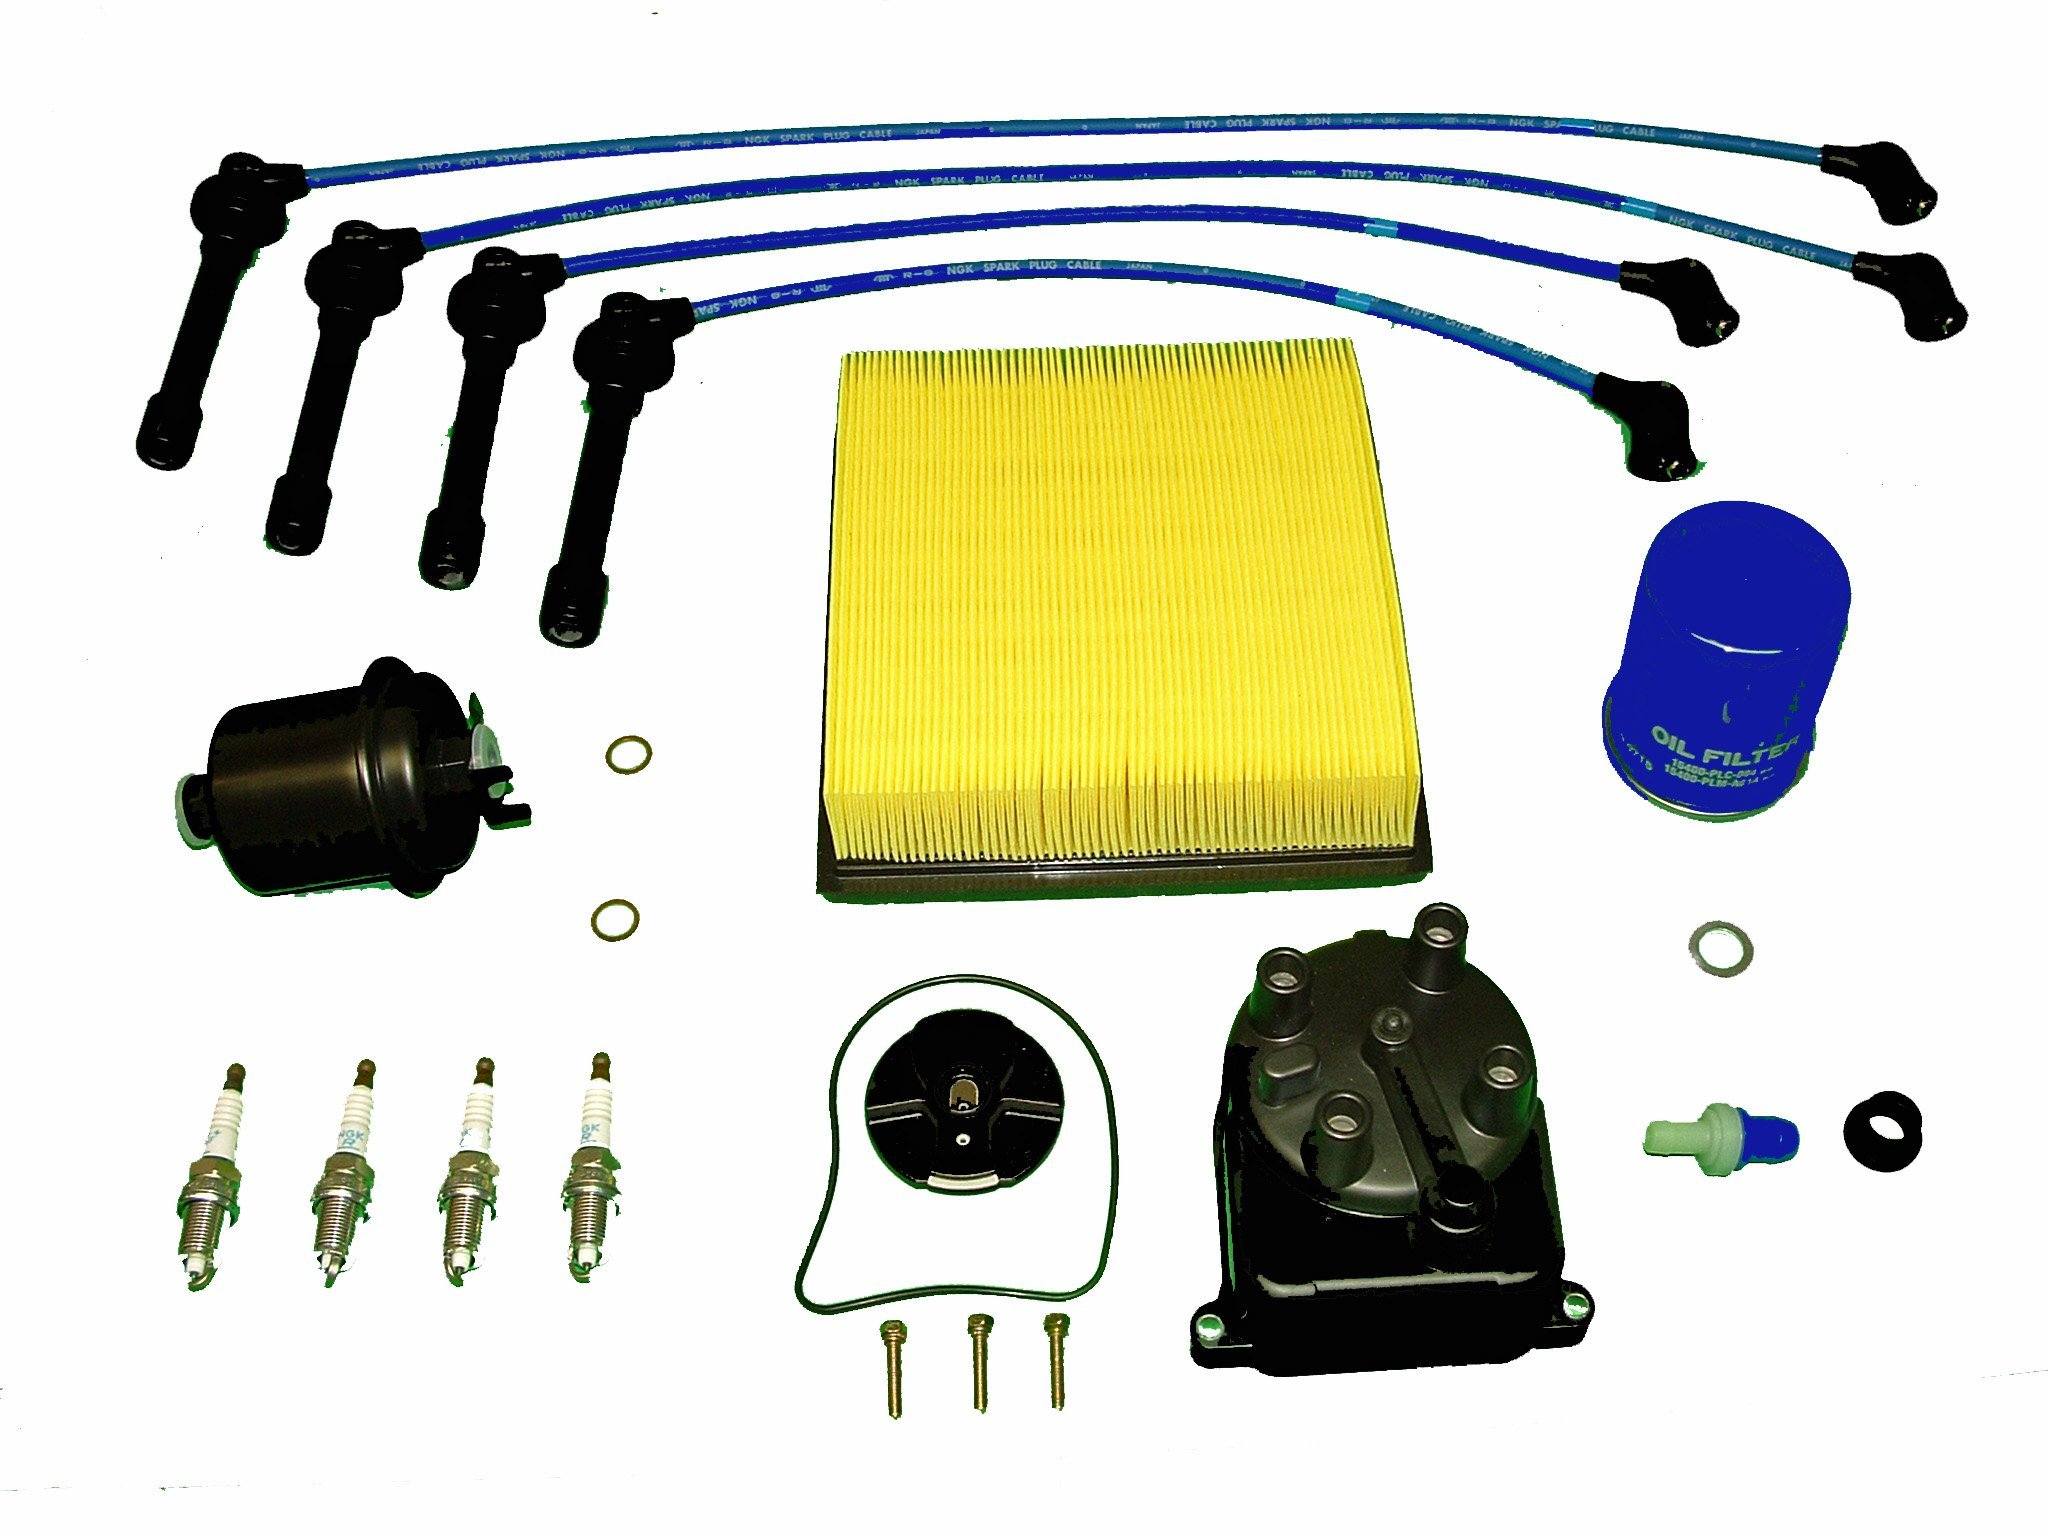 Tune Up Kit Replacement For Honda Civic EX 1996 to 2000 1.6L by TBK Timing Belt Kit